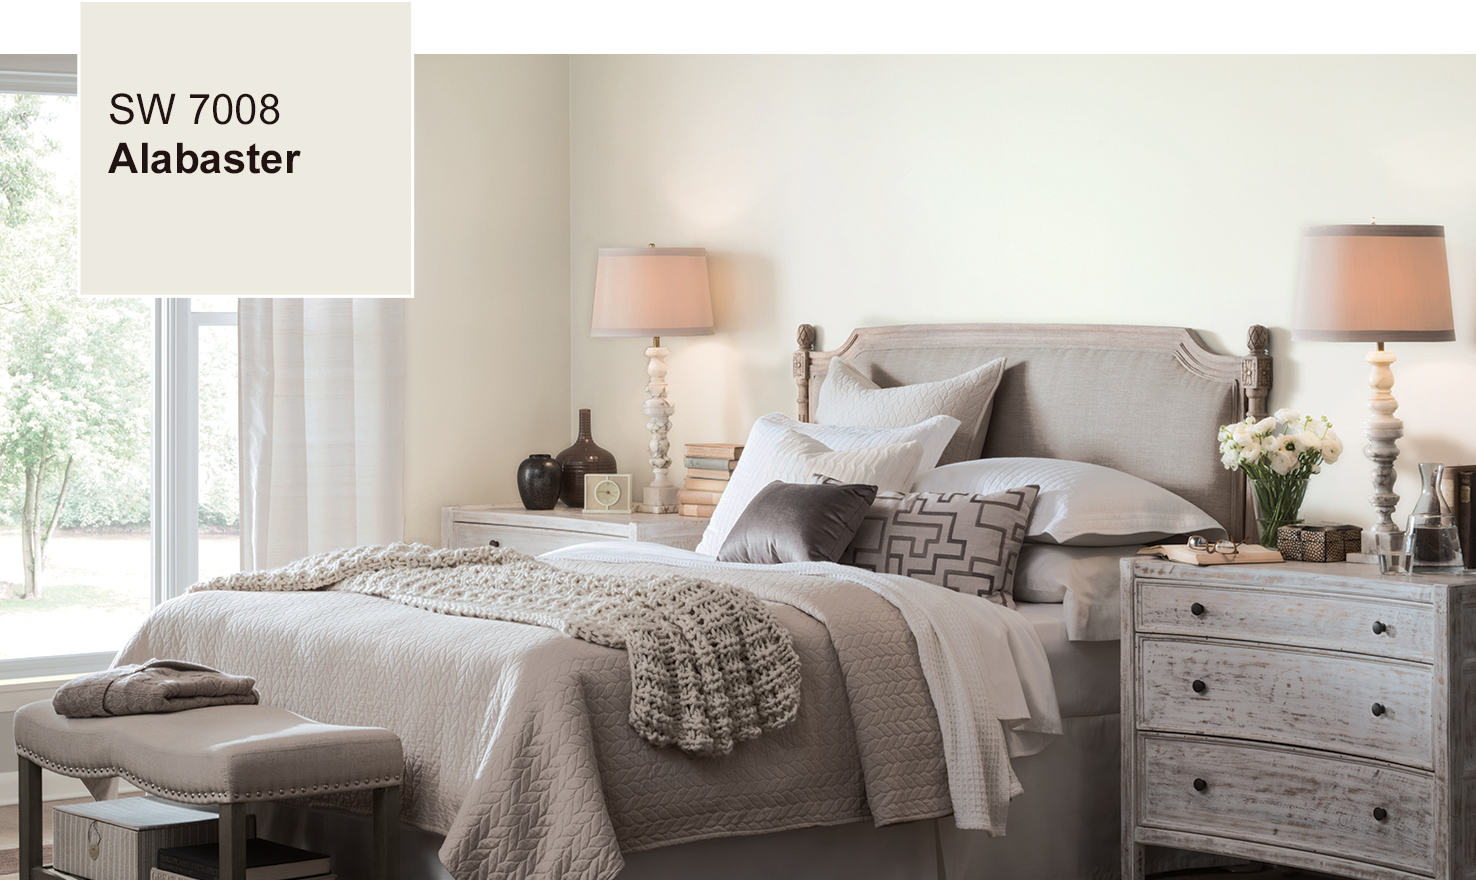 sherwin williams paint ideasSW 7008 Alabaster  2016 Color of the Year  SherwinWilliams